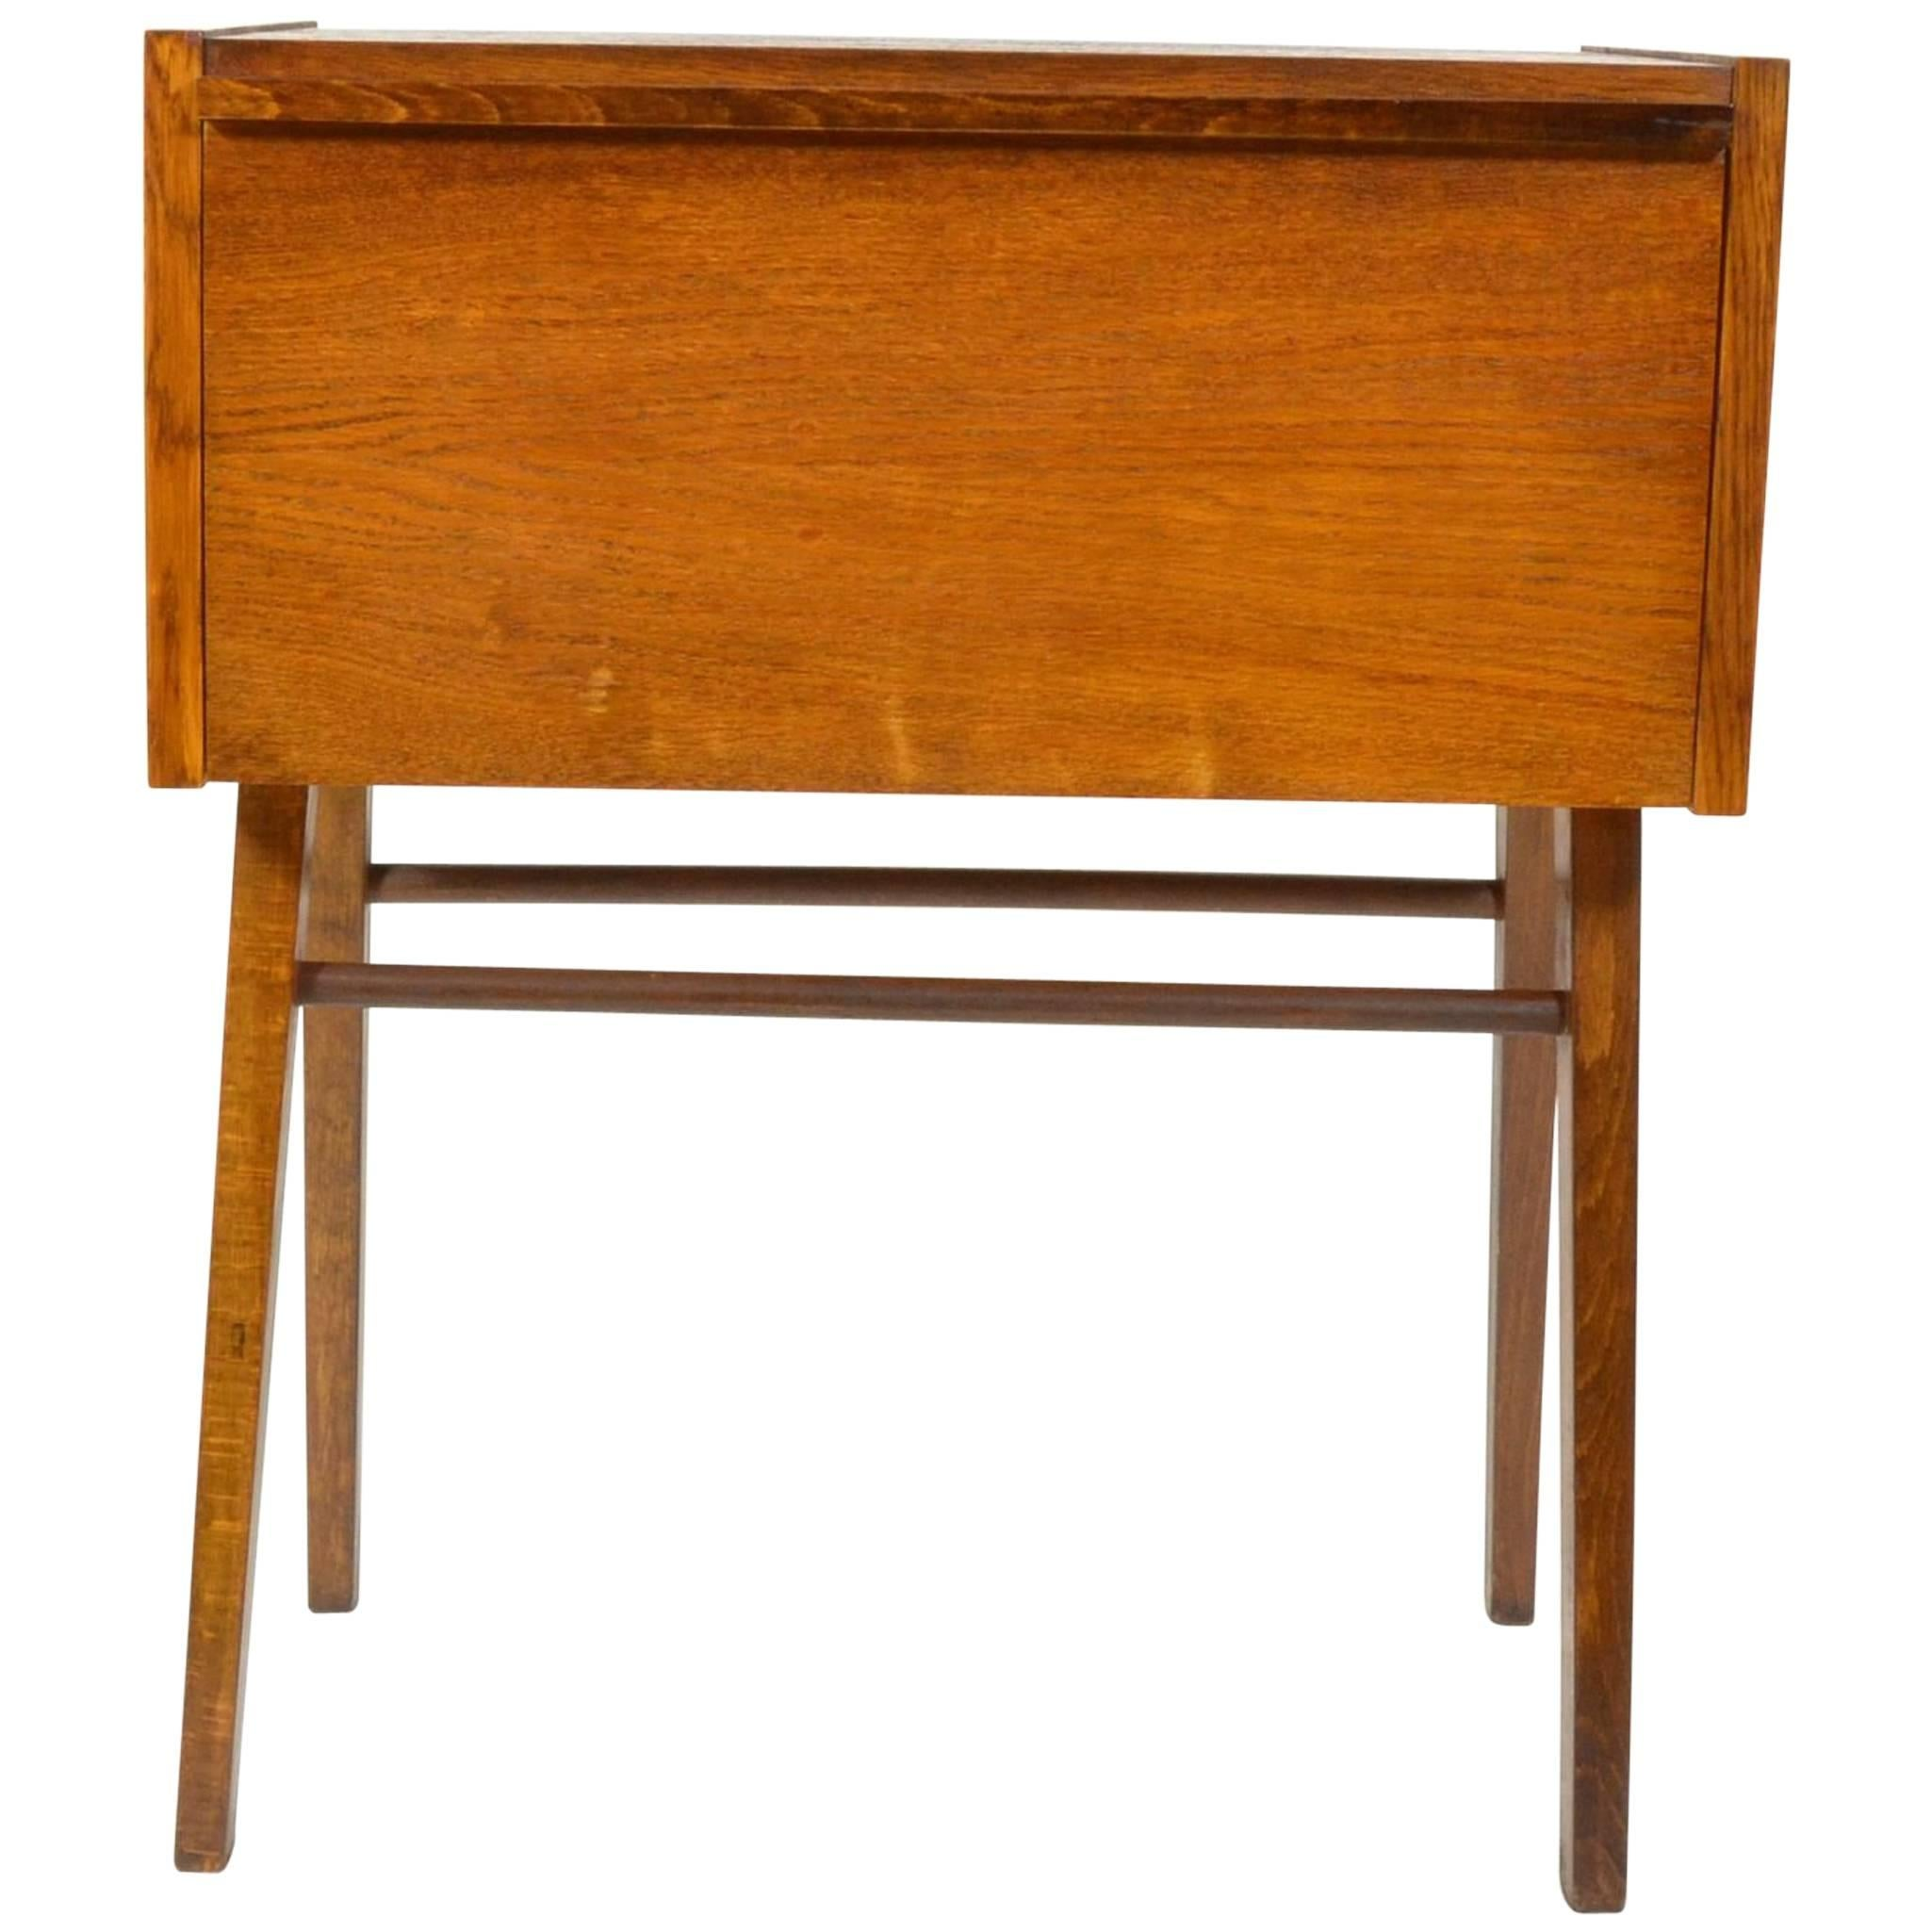 Small Wooden Cabinet, 1960s